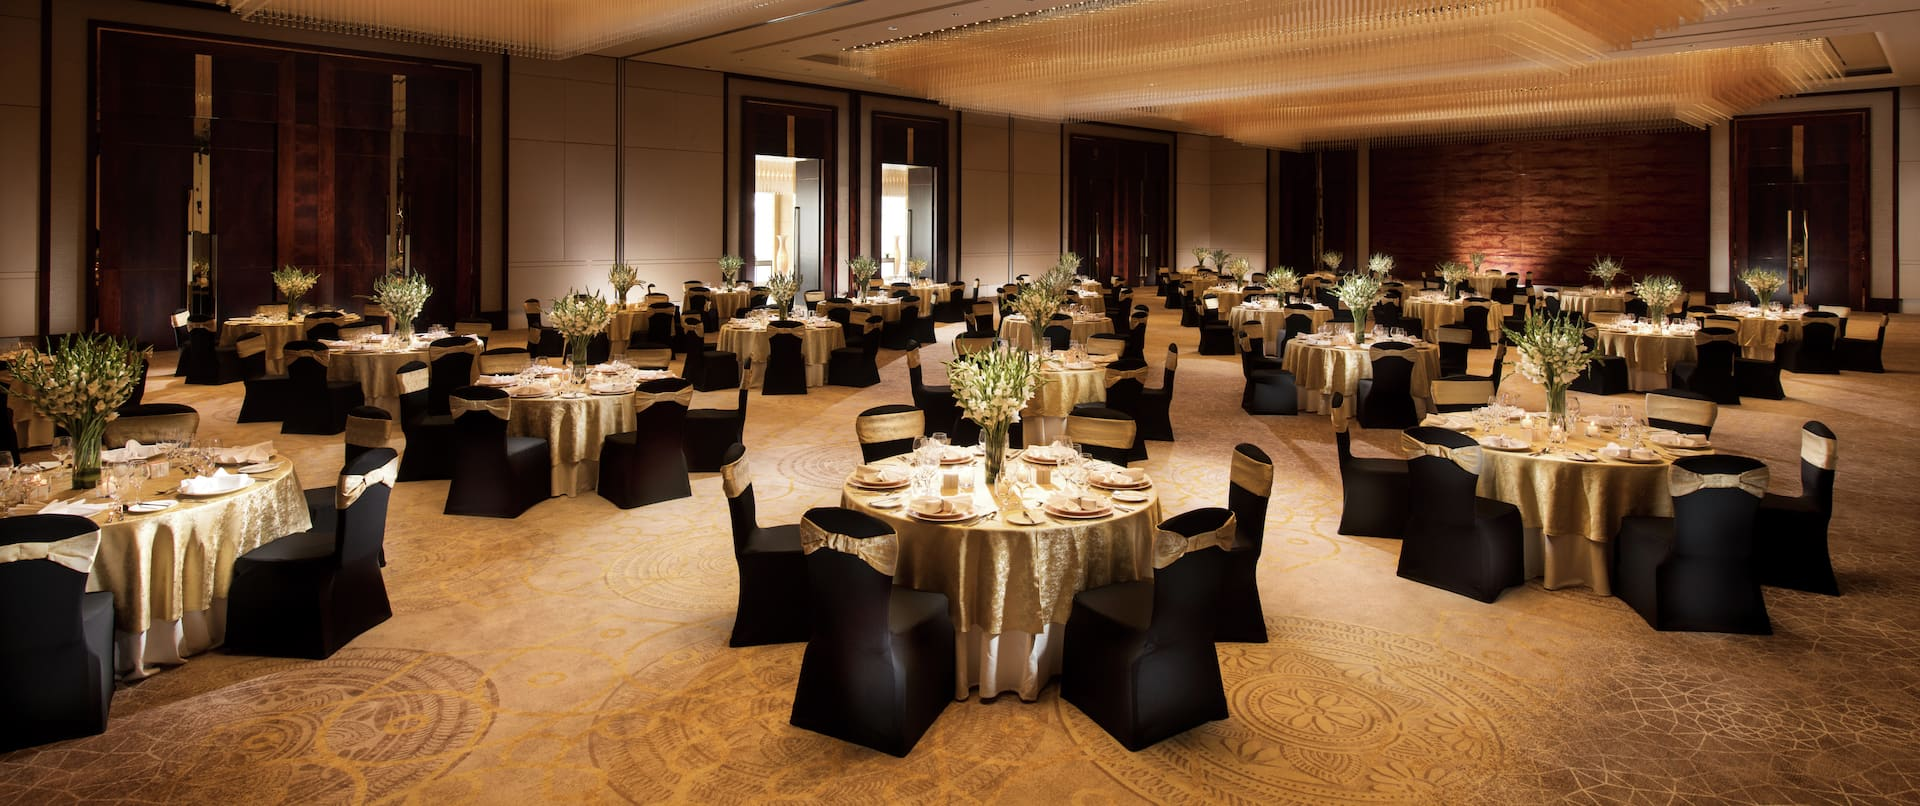 Ballroom Area with Round Tables and Chairs